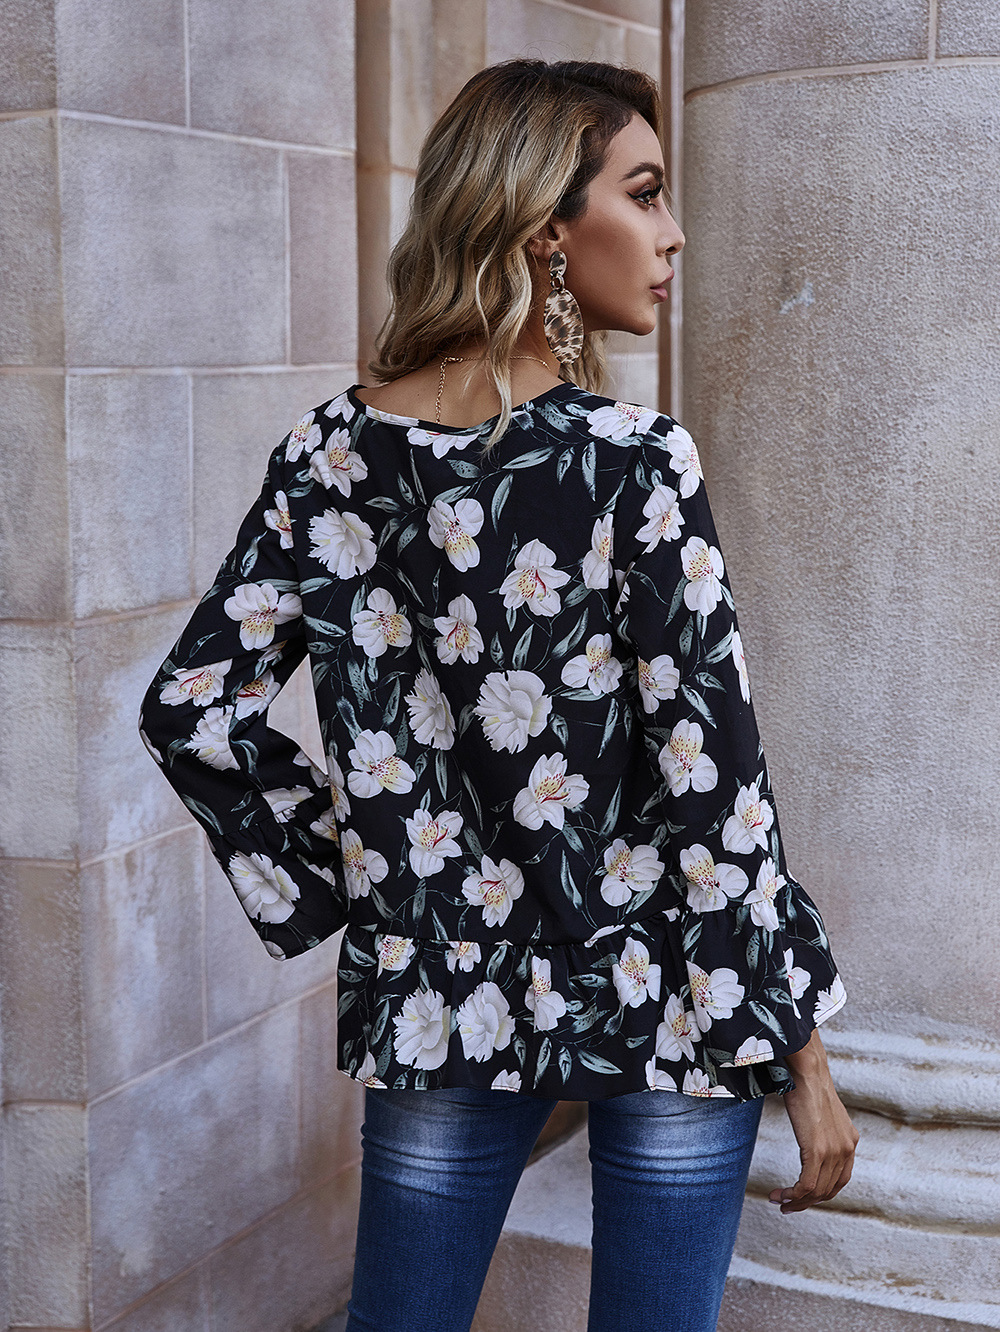 New  Women's Round Neck Chiffon Shirt Long Sleeve Printed Loose Top  NHDF281473